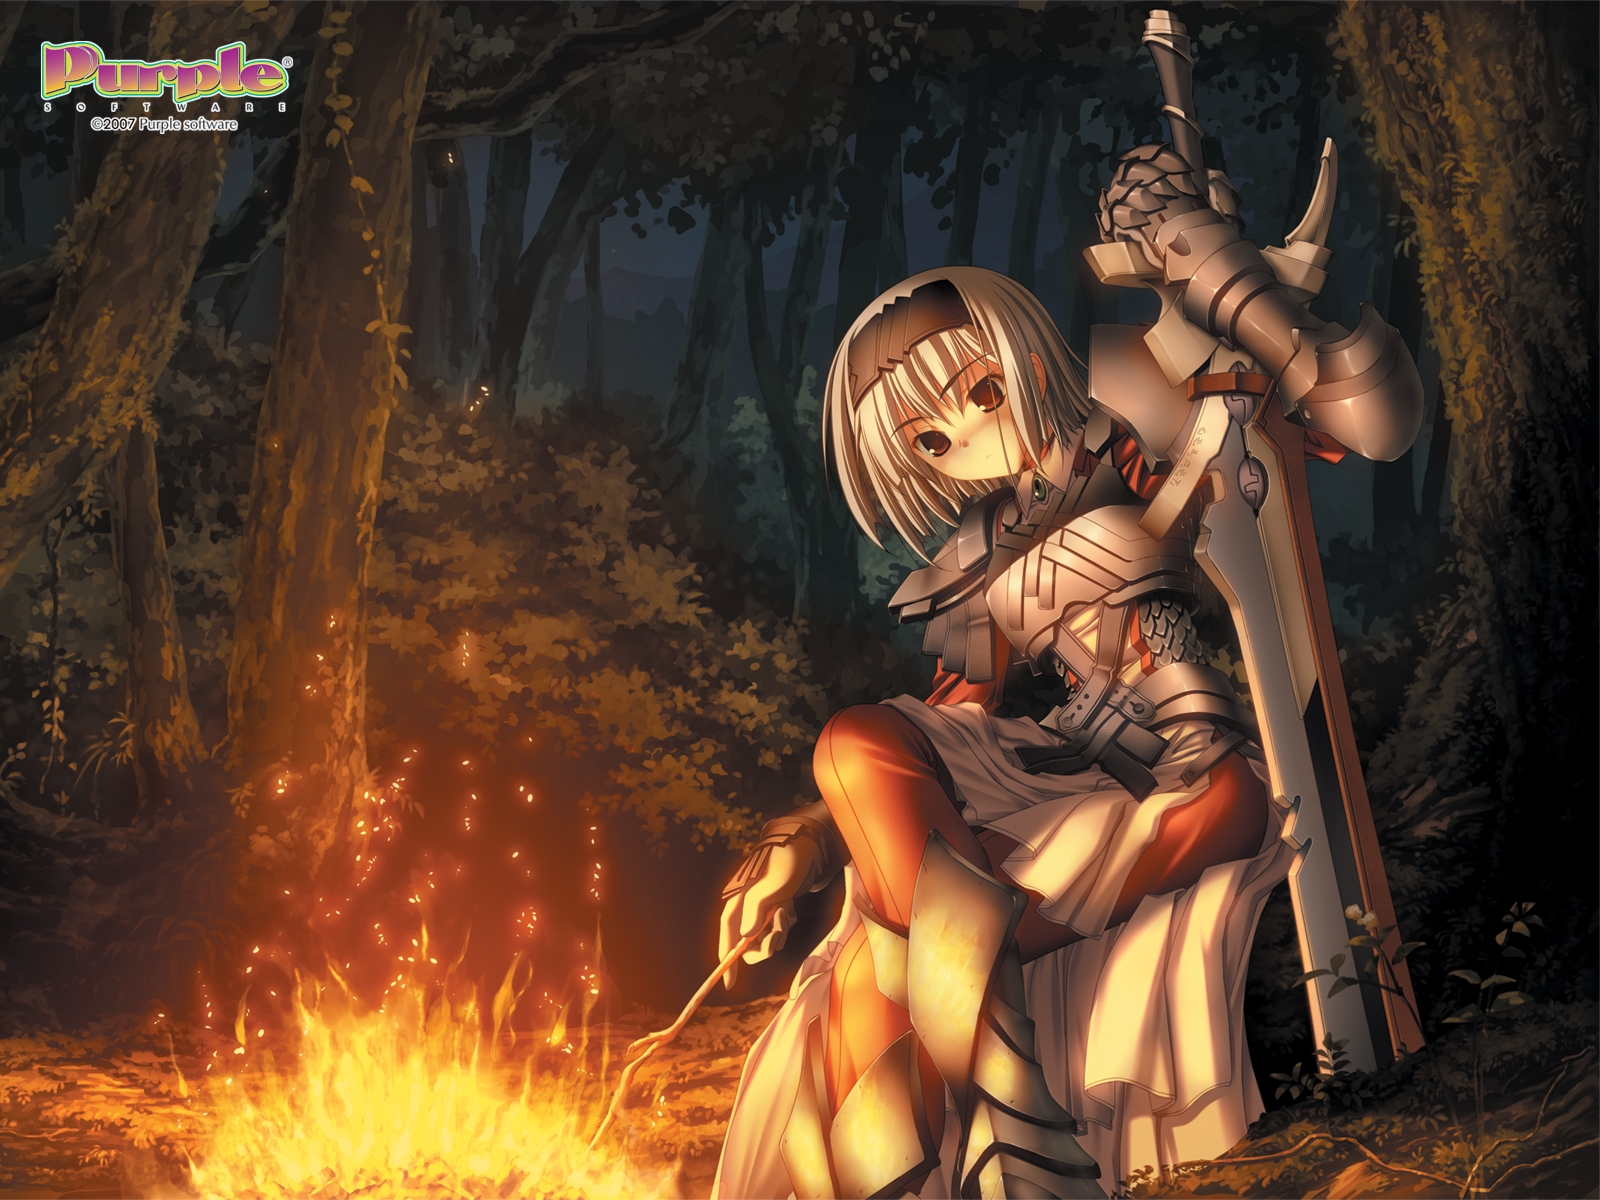 Anime - Unknown  Armor Sword Campfire Night Forest Anime Wallpaper